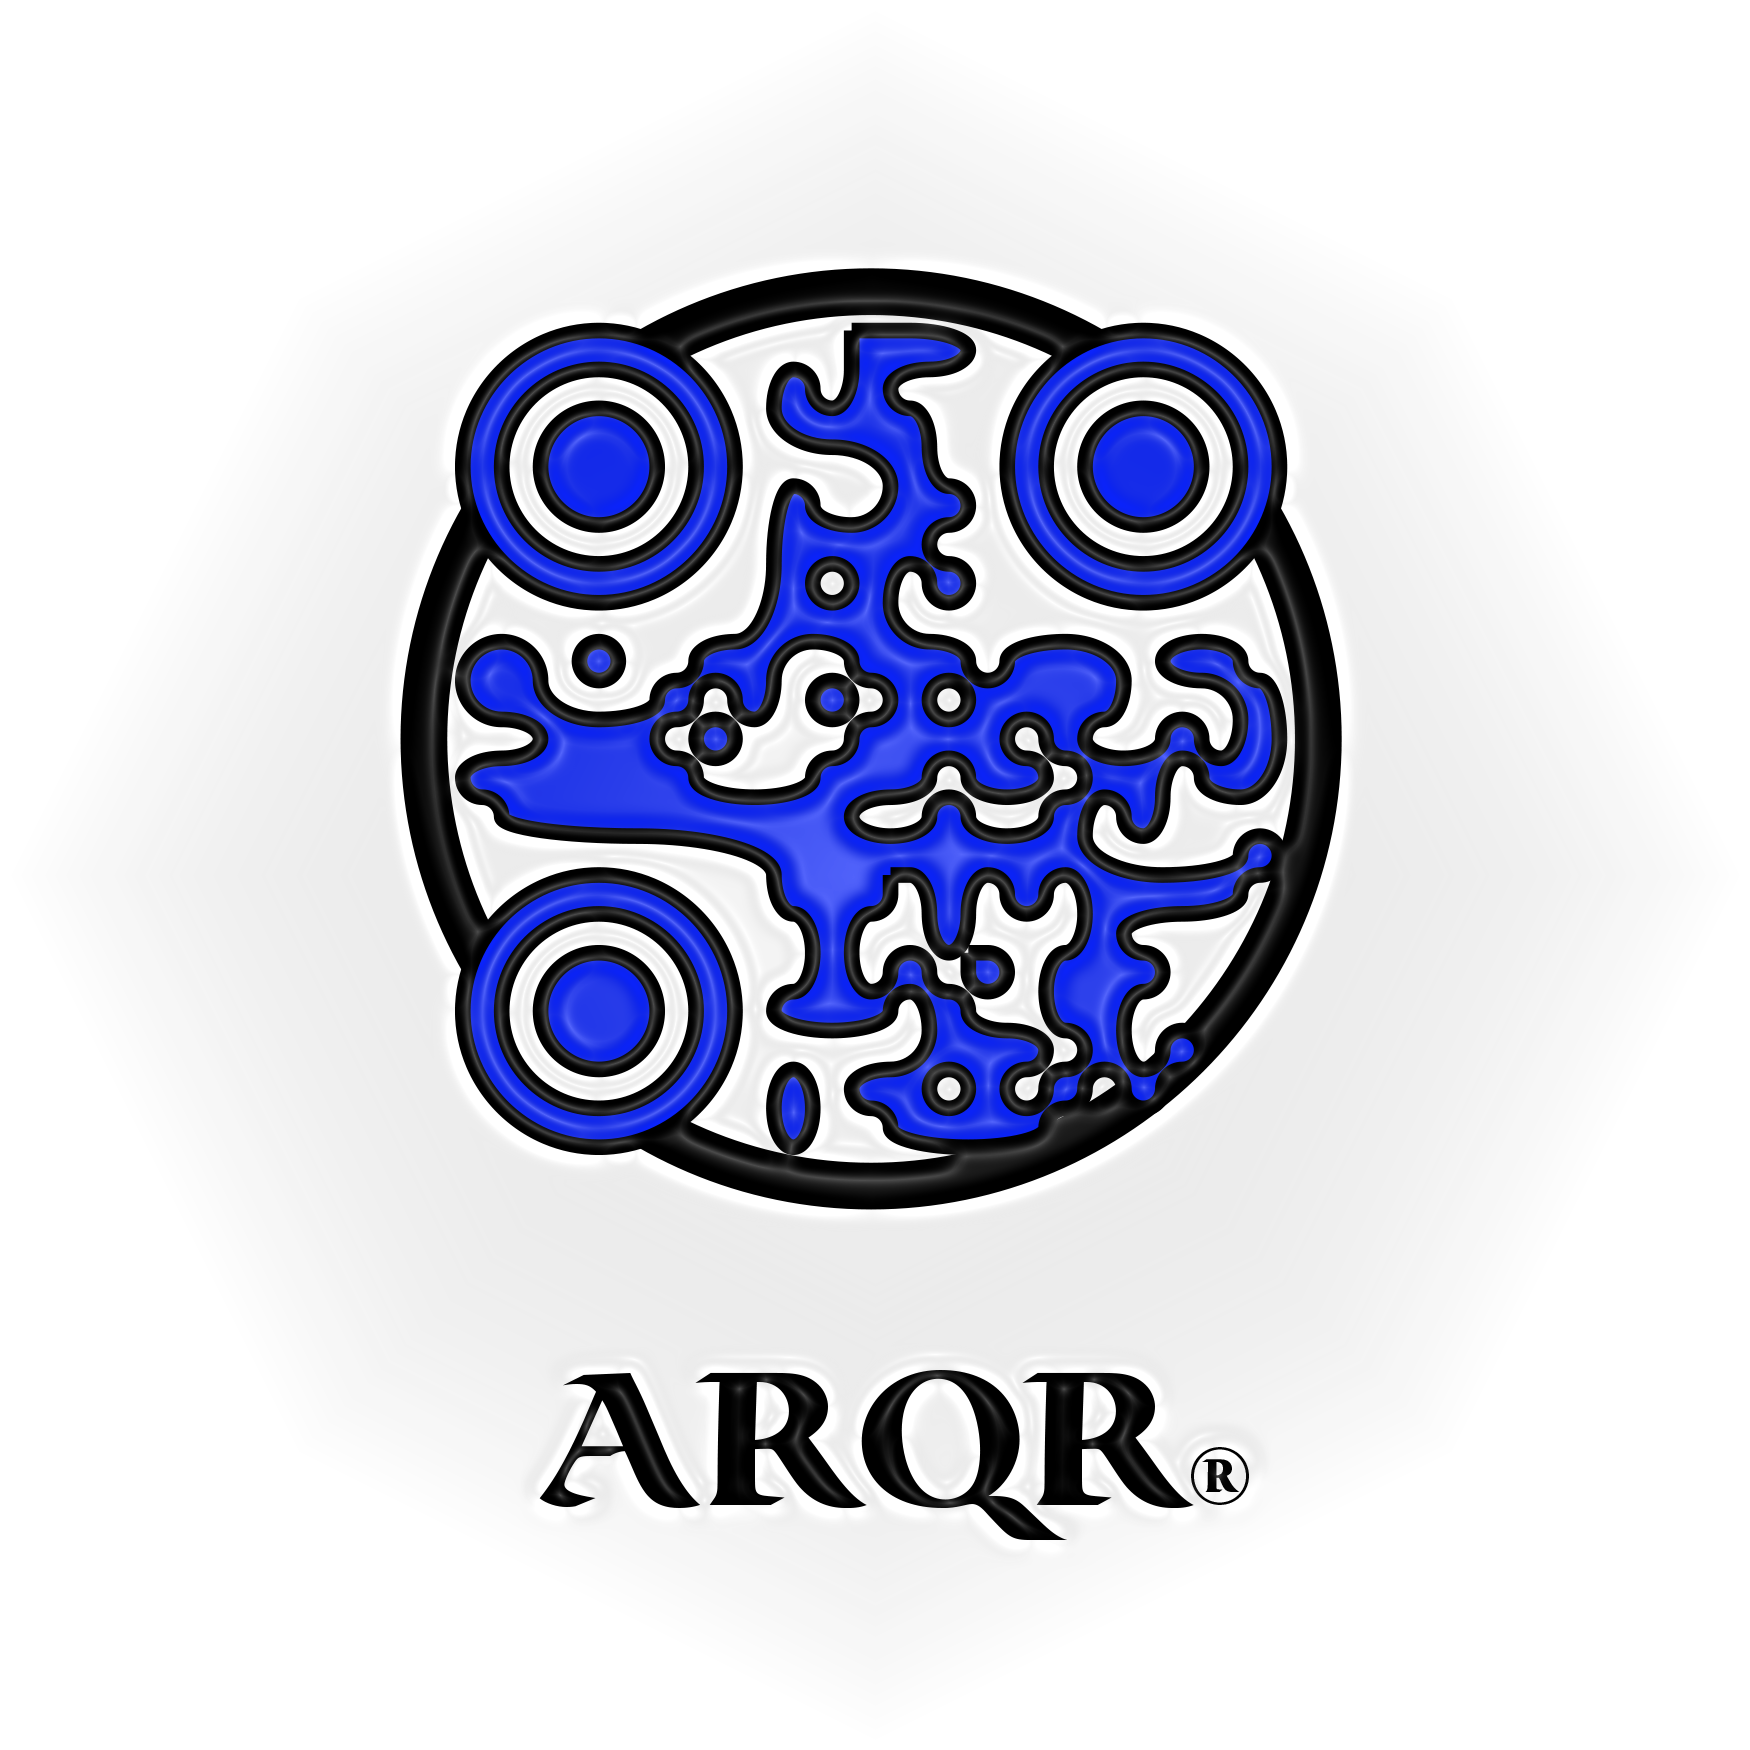 ARQR Code for arqr.com by Laird Marynick